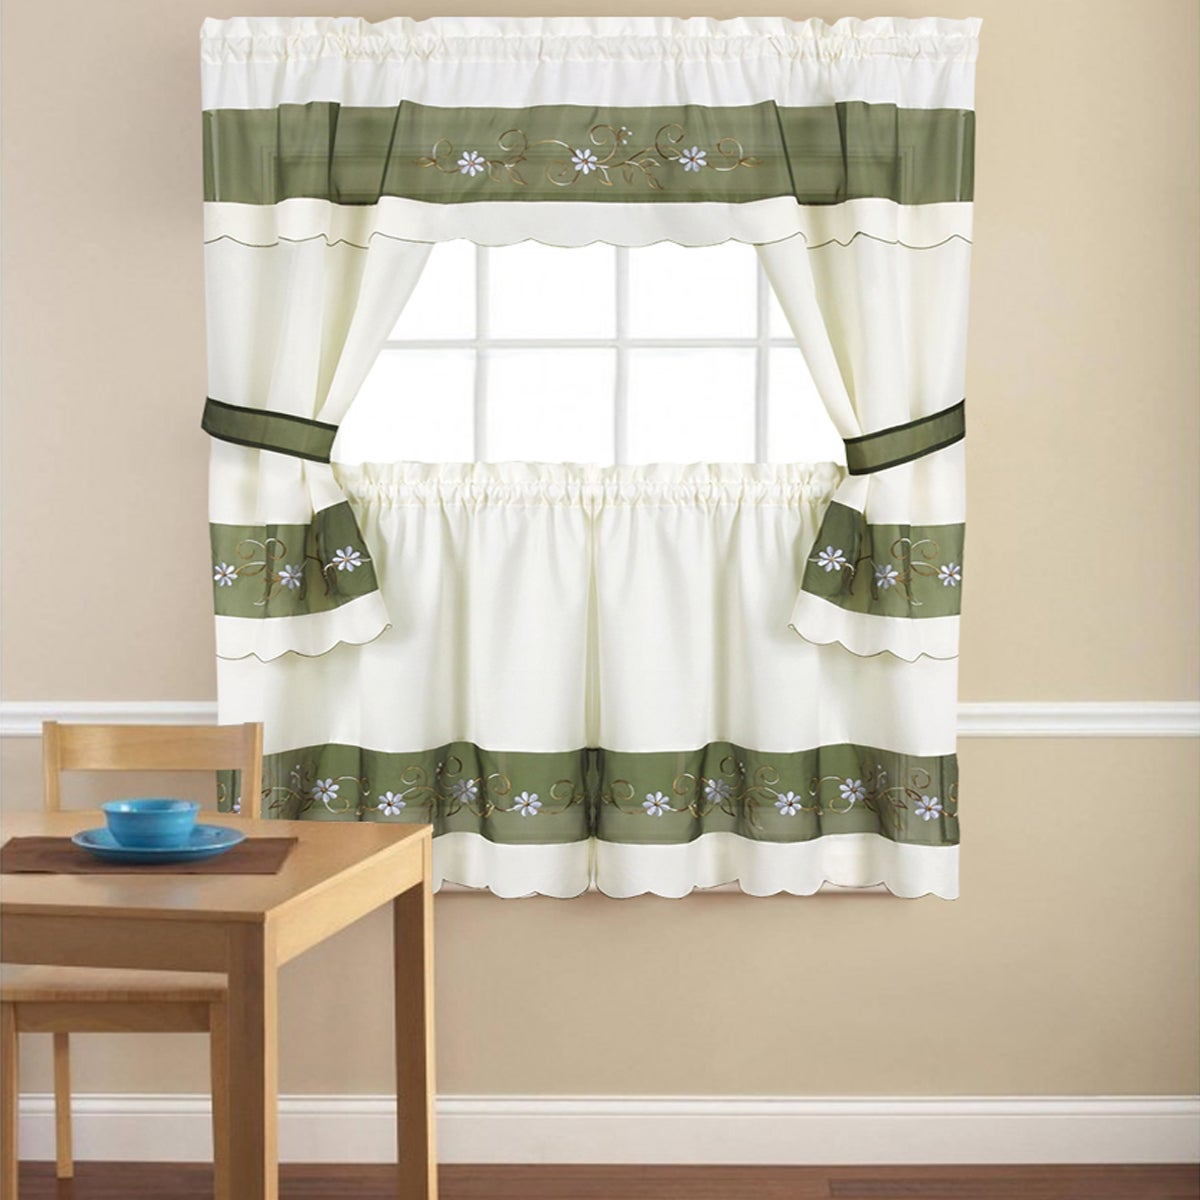 Embroidered Floral 5 Piece Kitchen Curtain Set For Cotton Blend Ivy Floral Tier Curtain And Swag Sets (View 15 of 20)